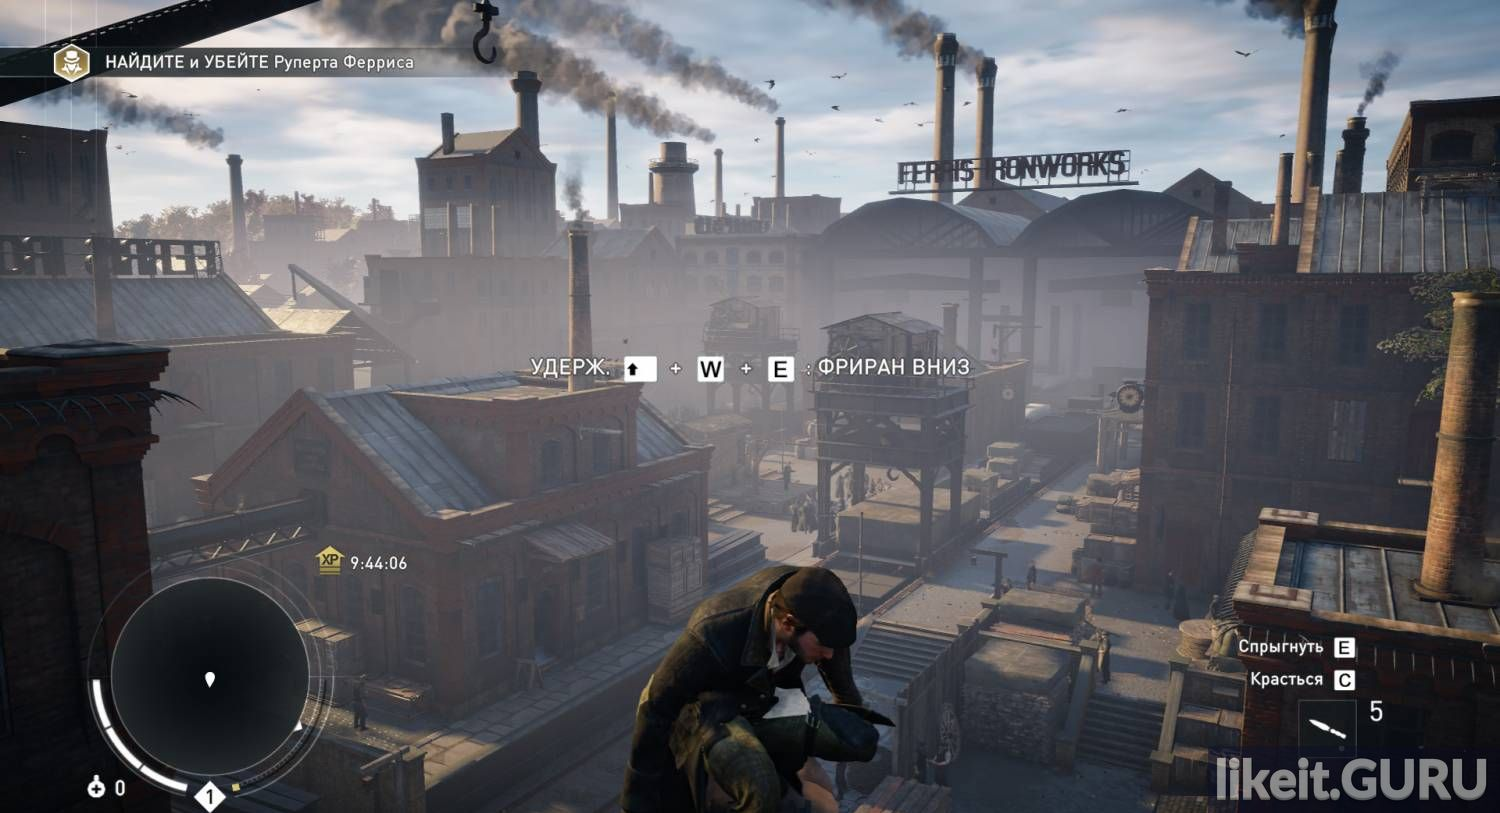 How to download and install assassin's creed origin free for pc.